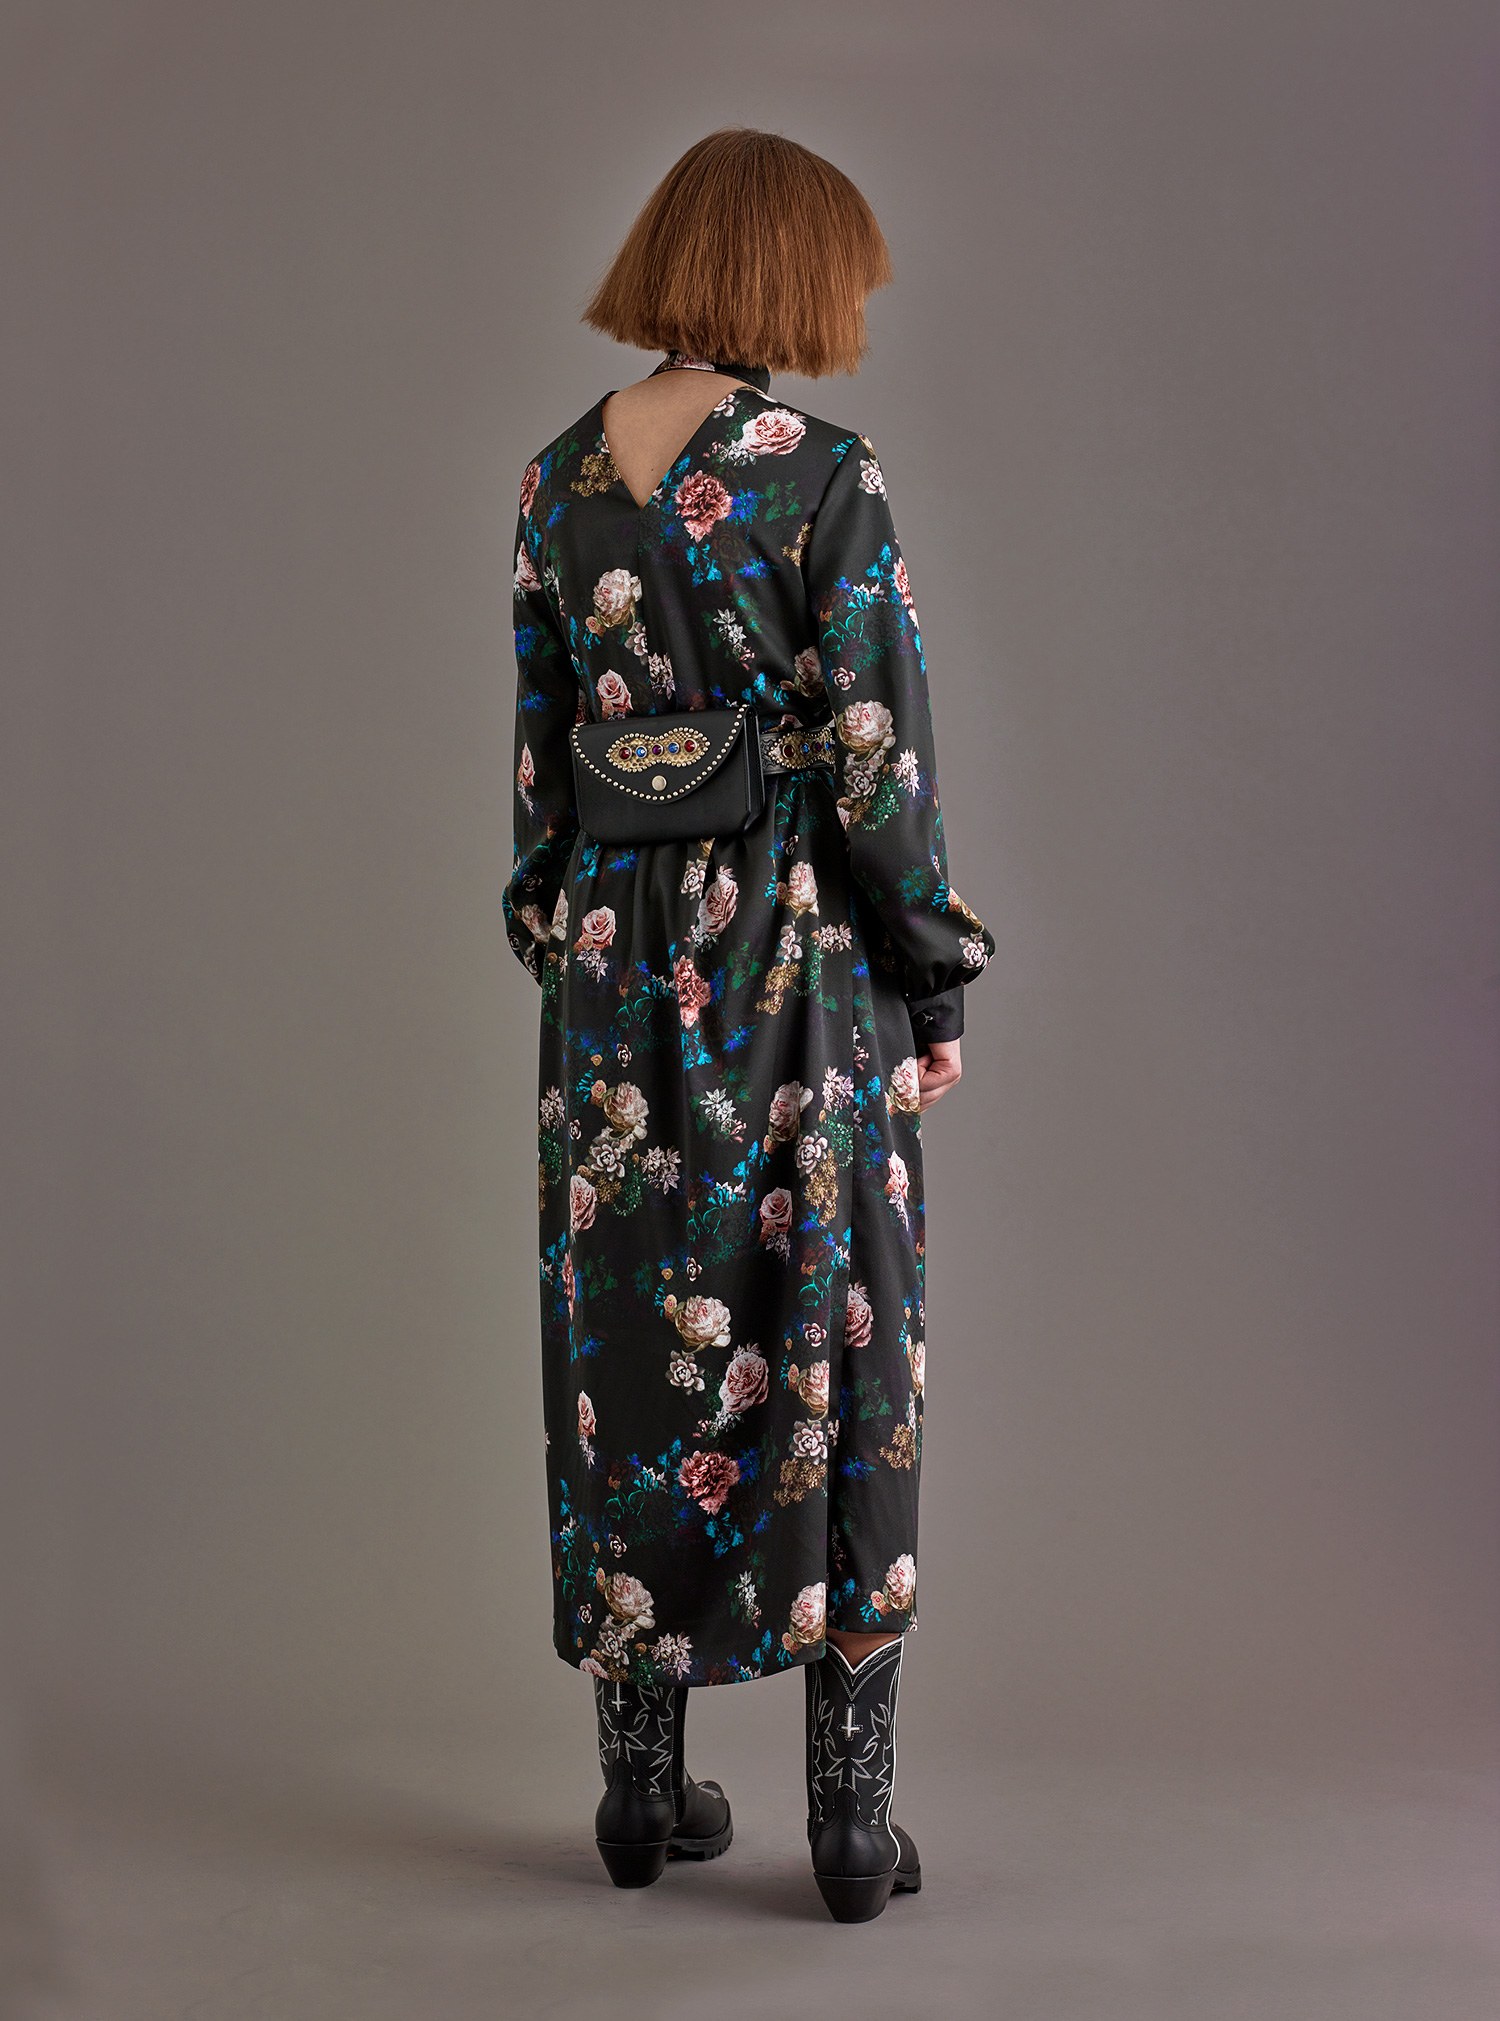 Lookbook picture: photography by Tom Ordoyno, styling by Anna Pesonen.